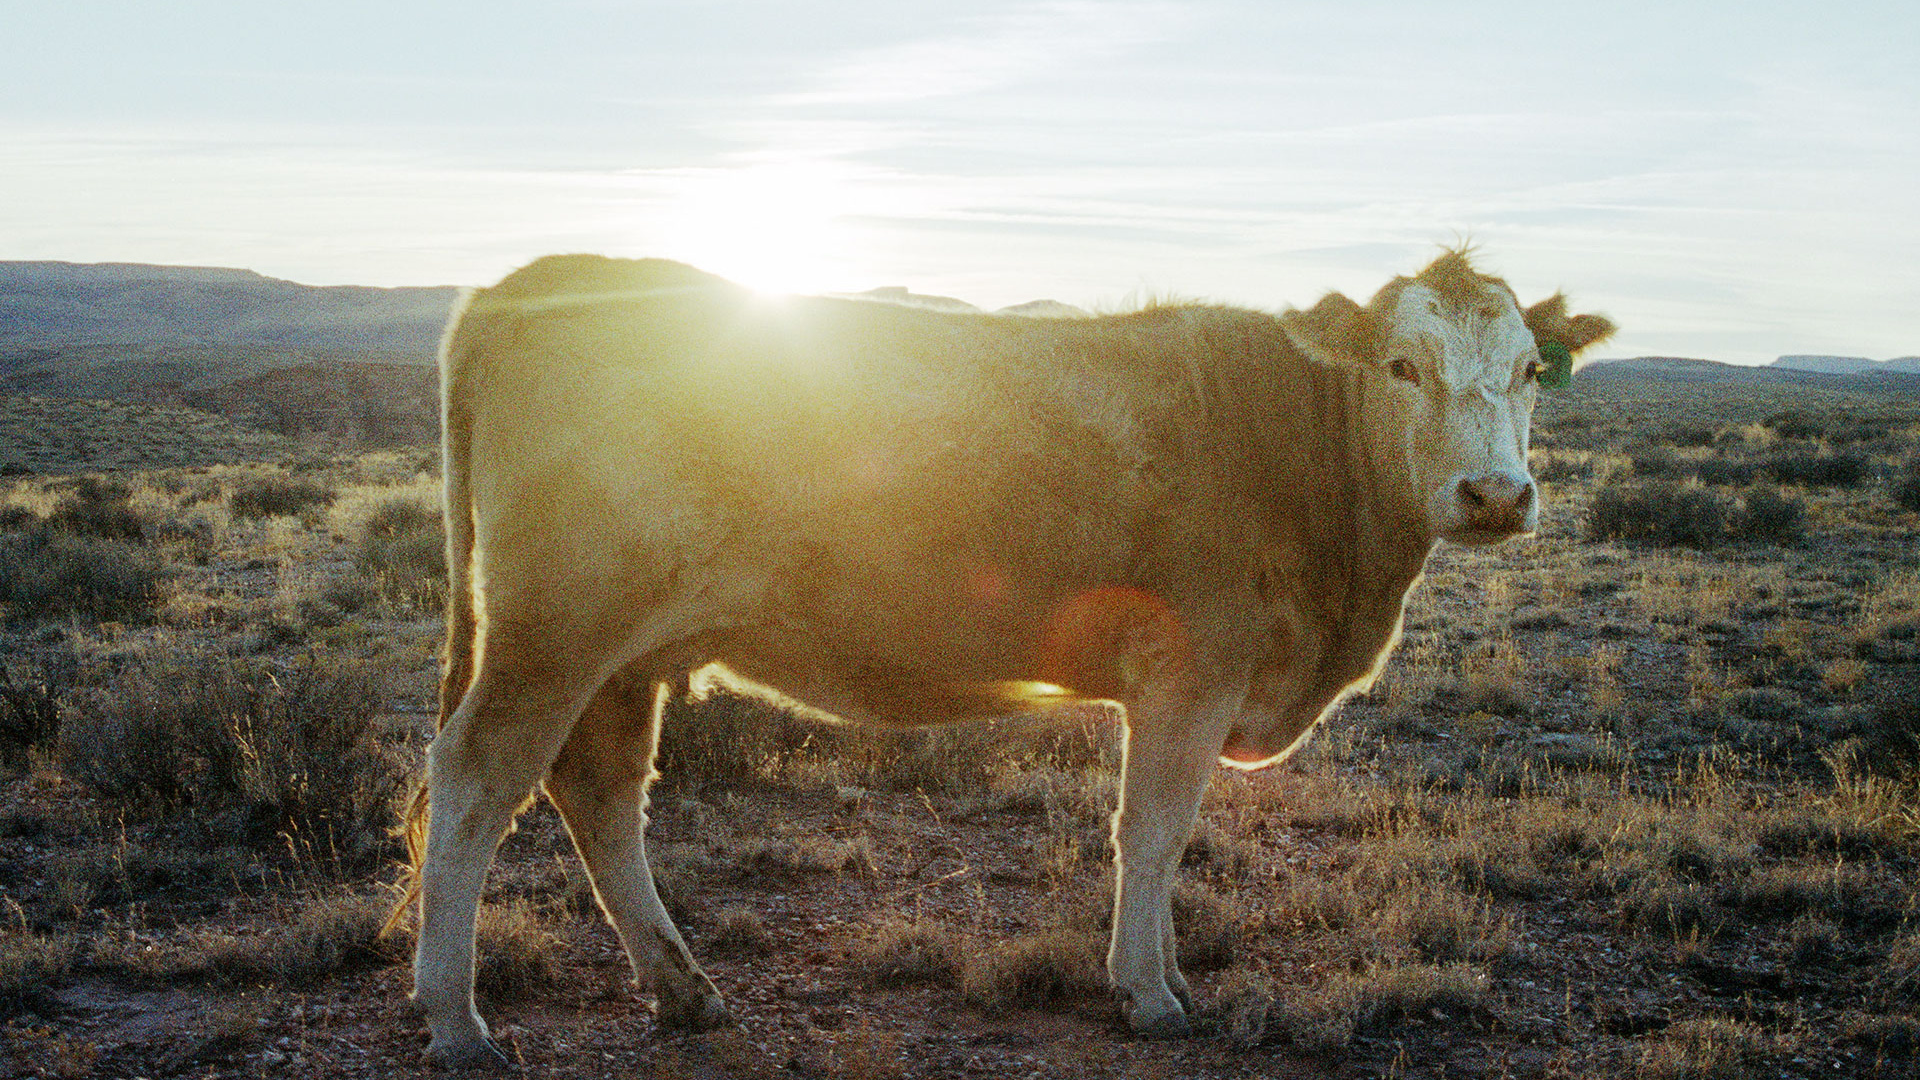 Cow engulfed in a sunny glow while staring at the photographer